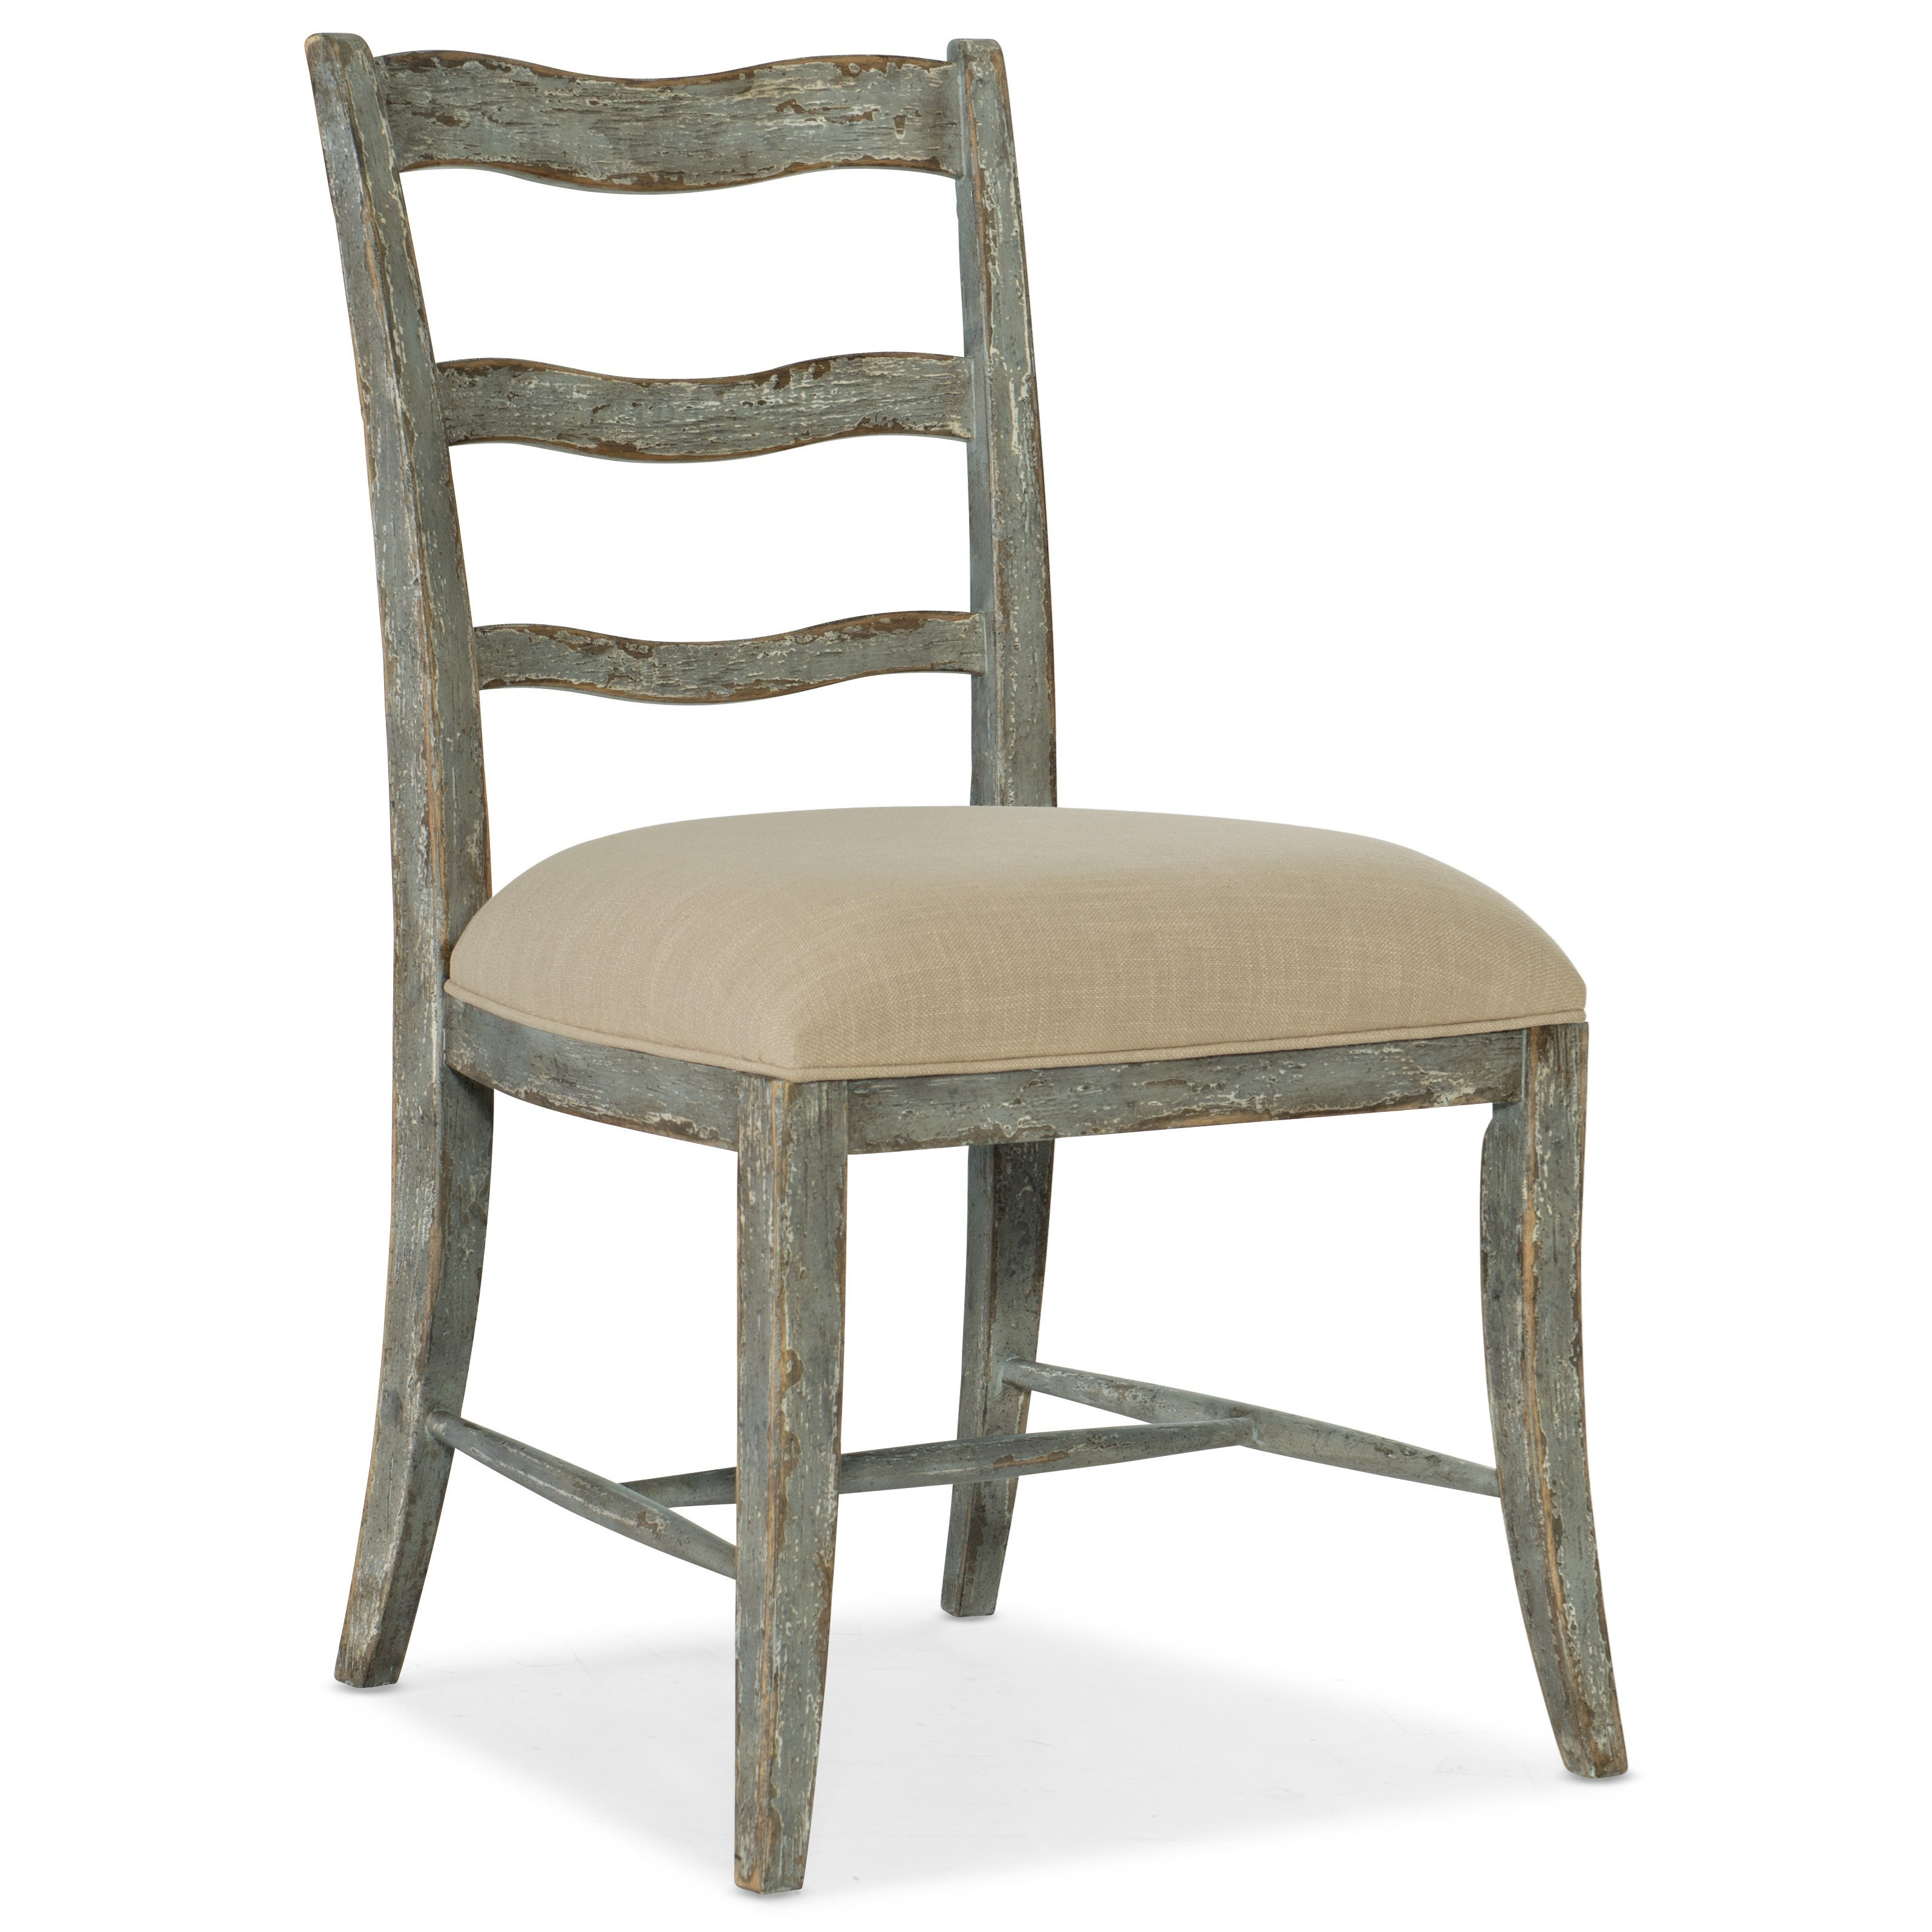 Alfresco La Riva Upholstered Seat Side Chair by Hooker Furniture at Baer's Furniture